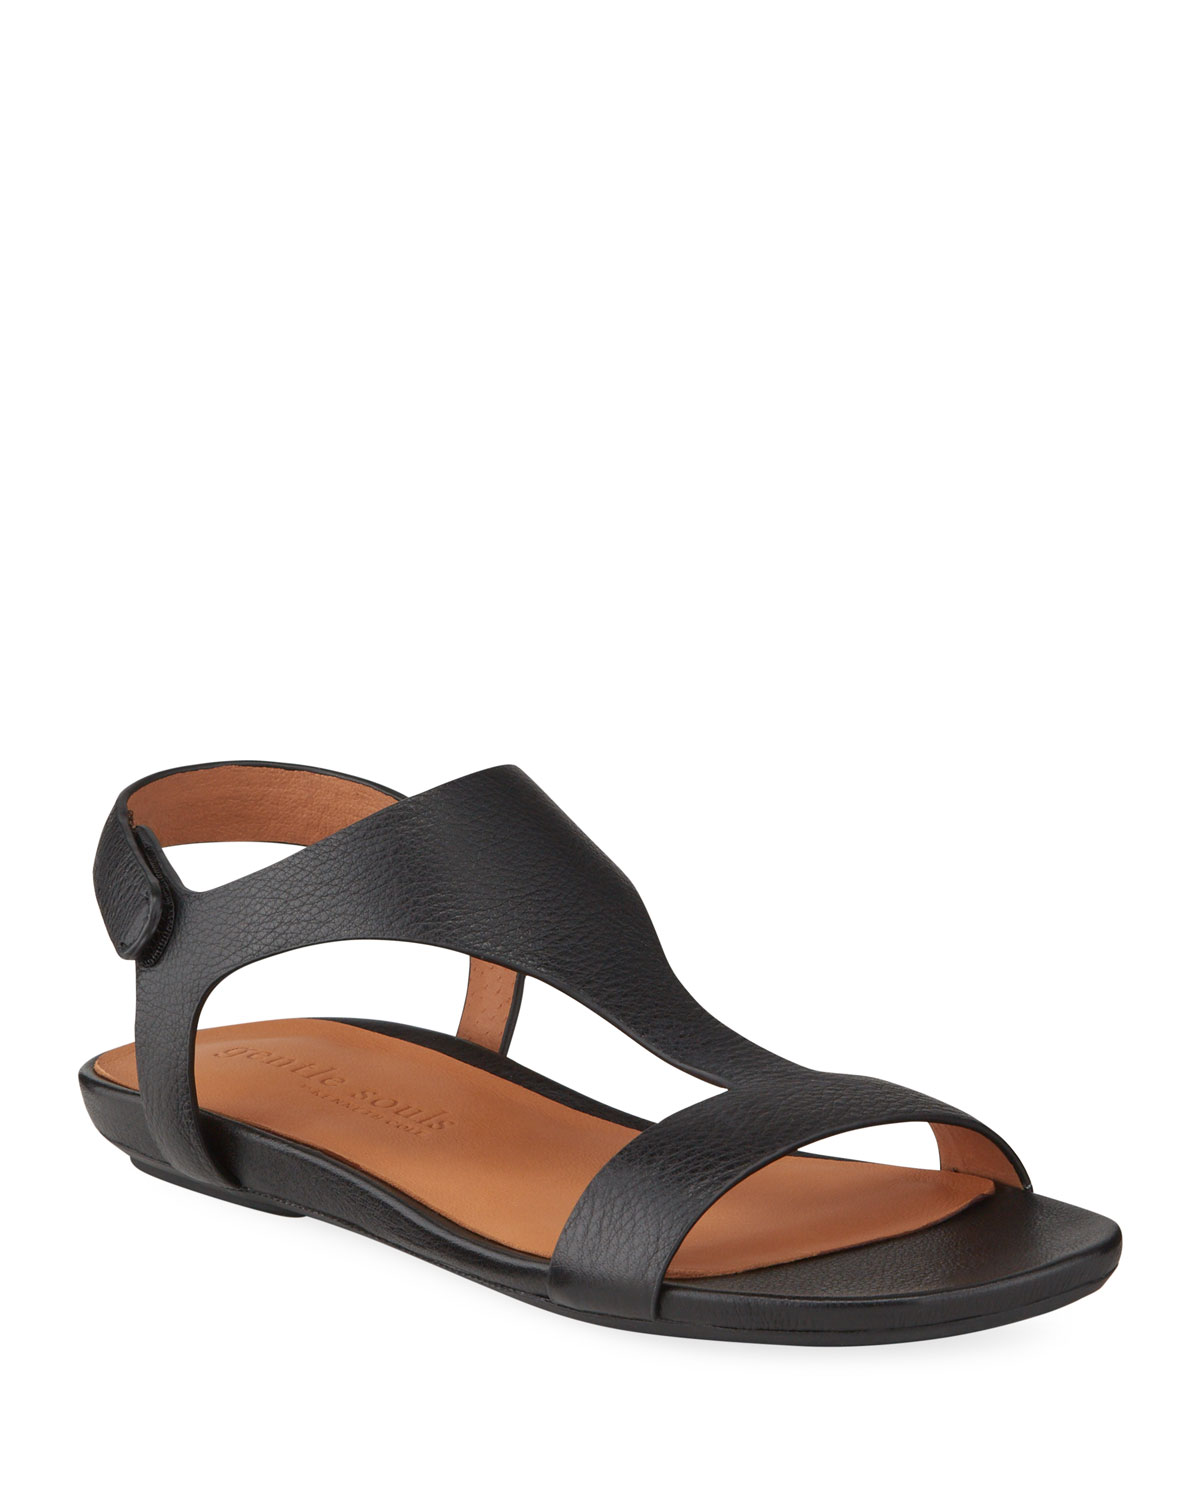 Gentle Souls Sandals LARK T-STRAP LEATHER SANDALS